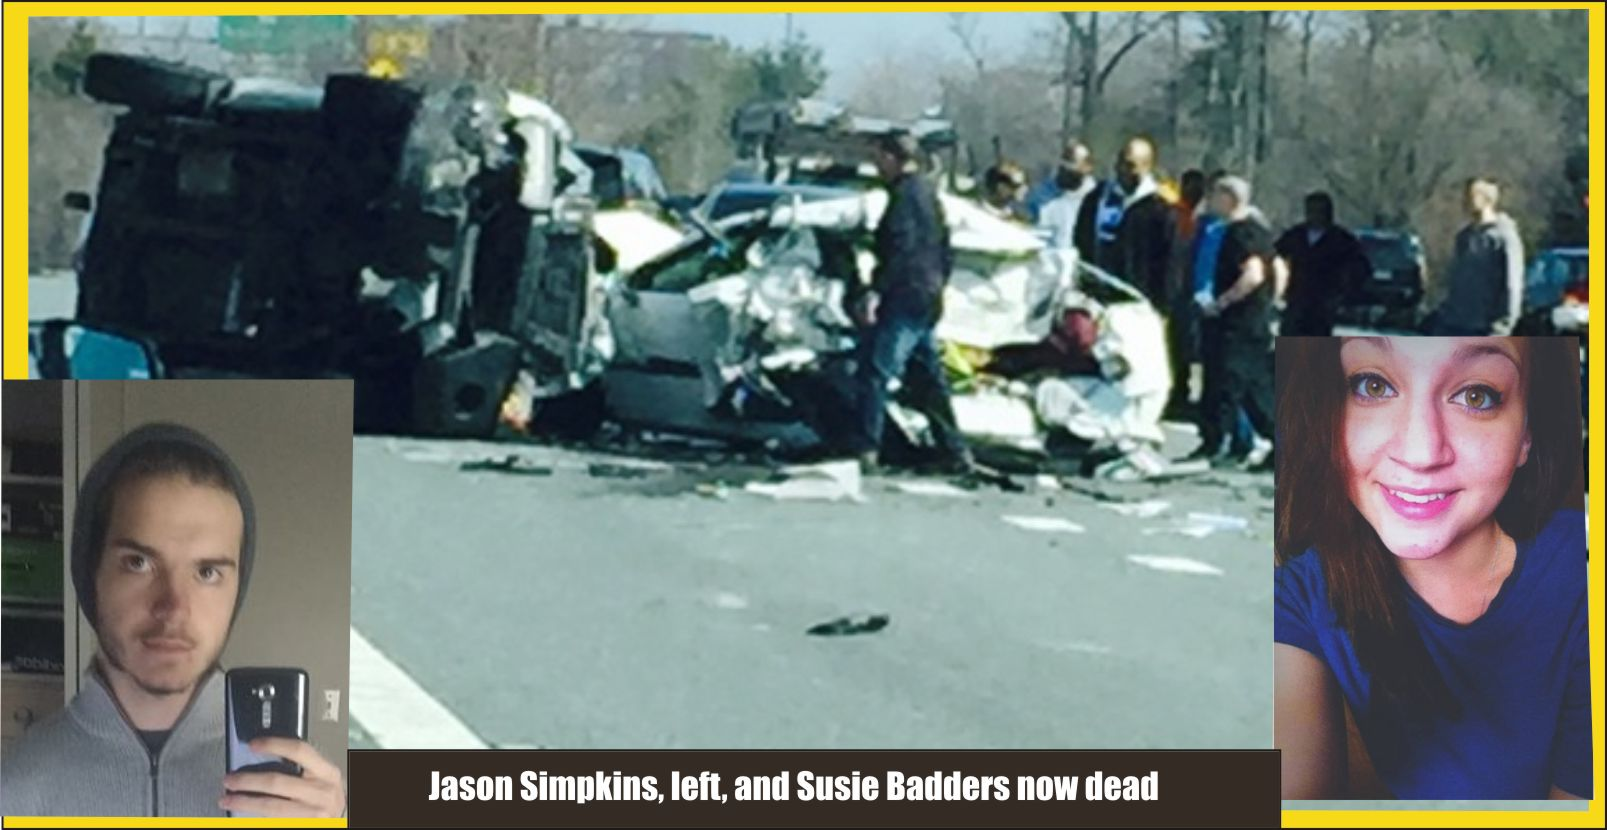 Jason Simpkins and Susie Badders now dead too in Rt